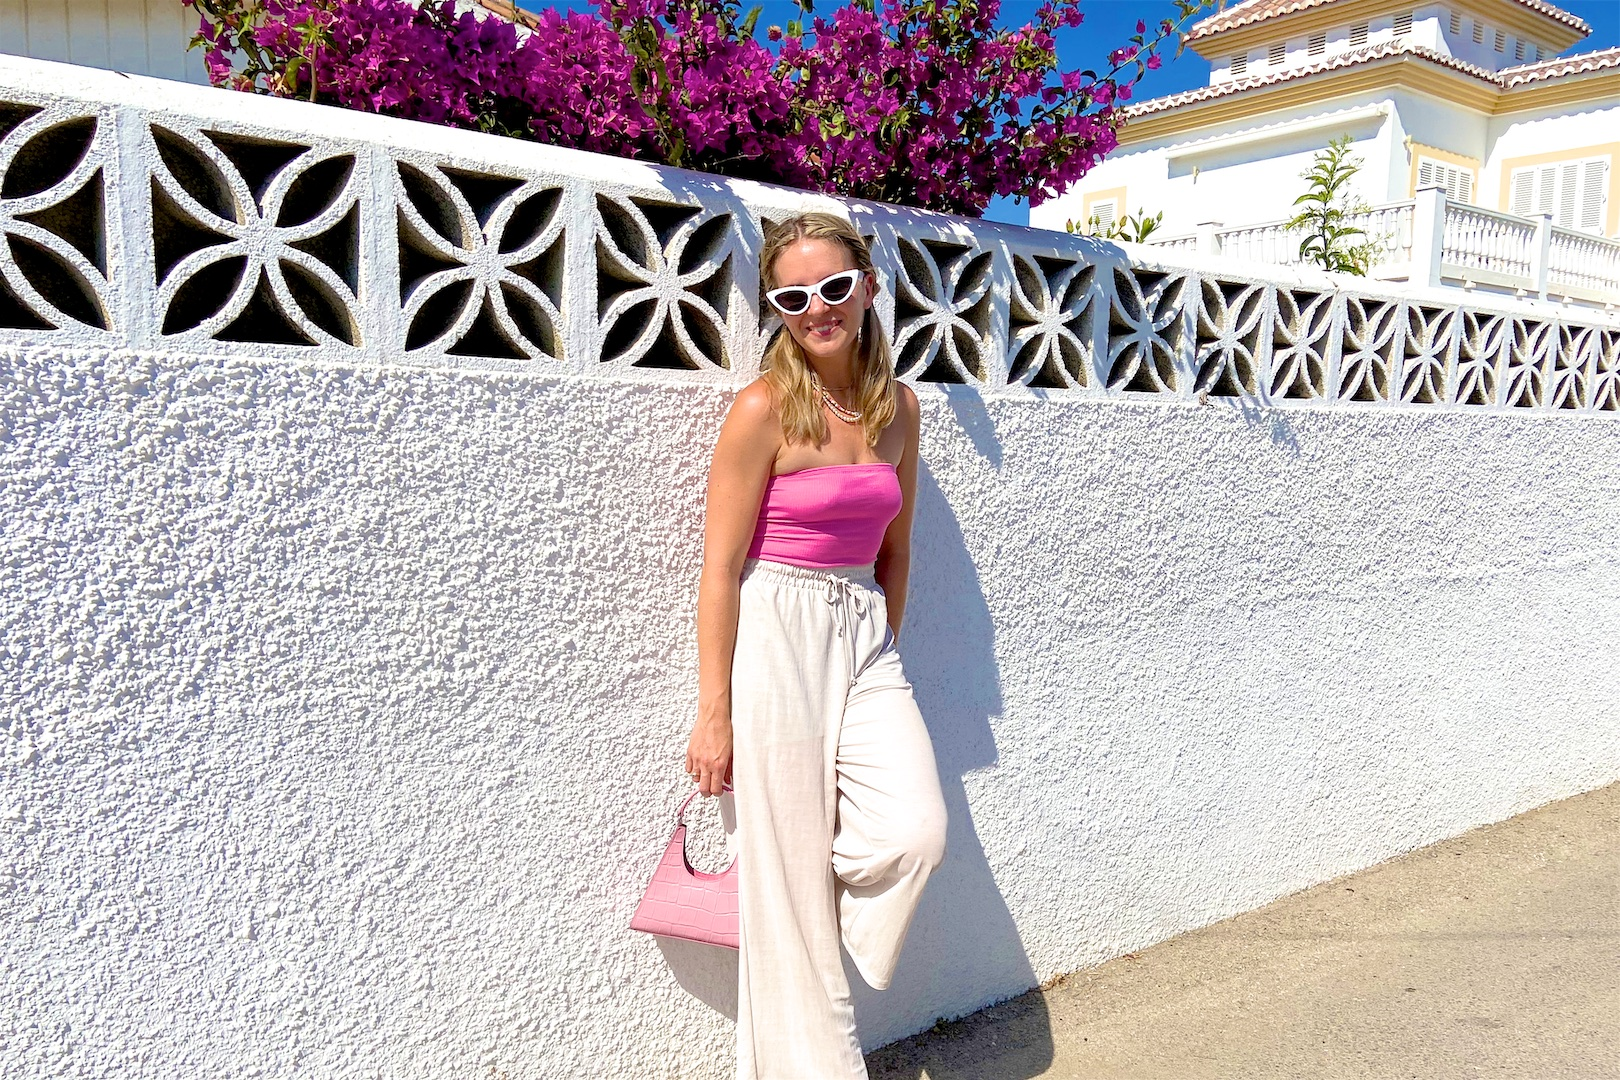 Pink Bag. Fashion Blogger Girl by Style Blog Heartfelt Hunt. Girl with blond braids wearing a pink bag, pink top, white sunglasses, wide leg pants and pink sandals.